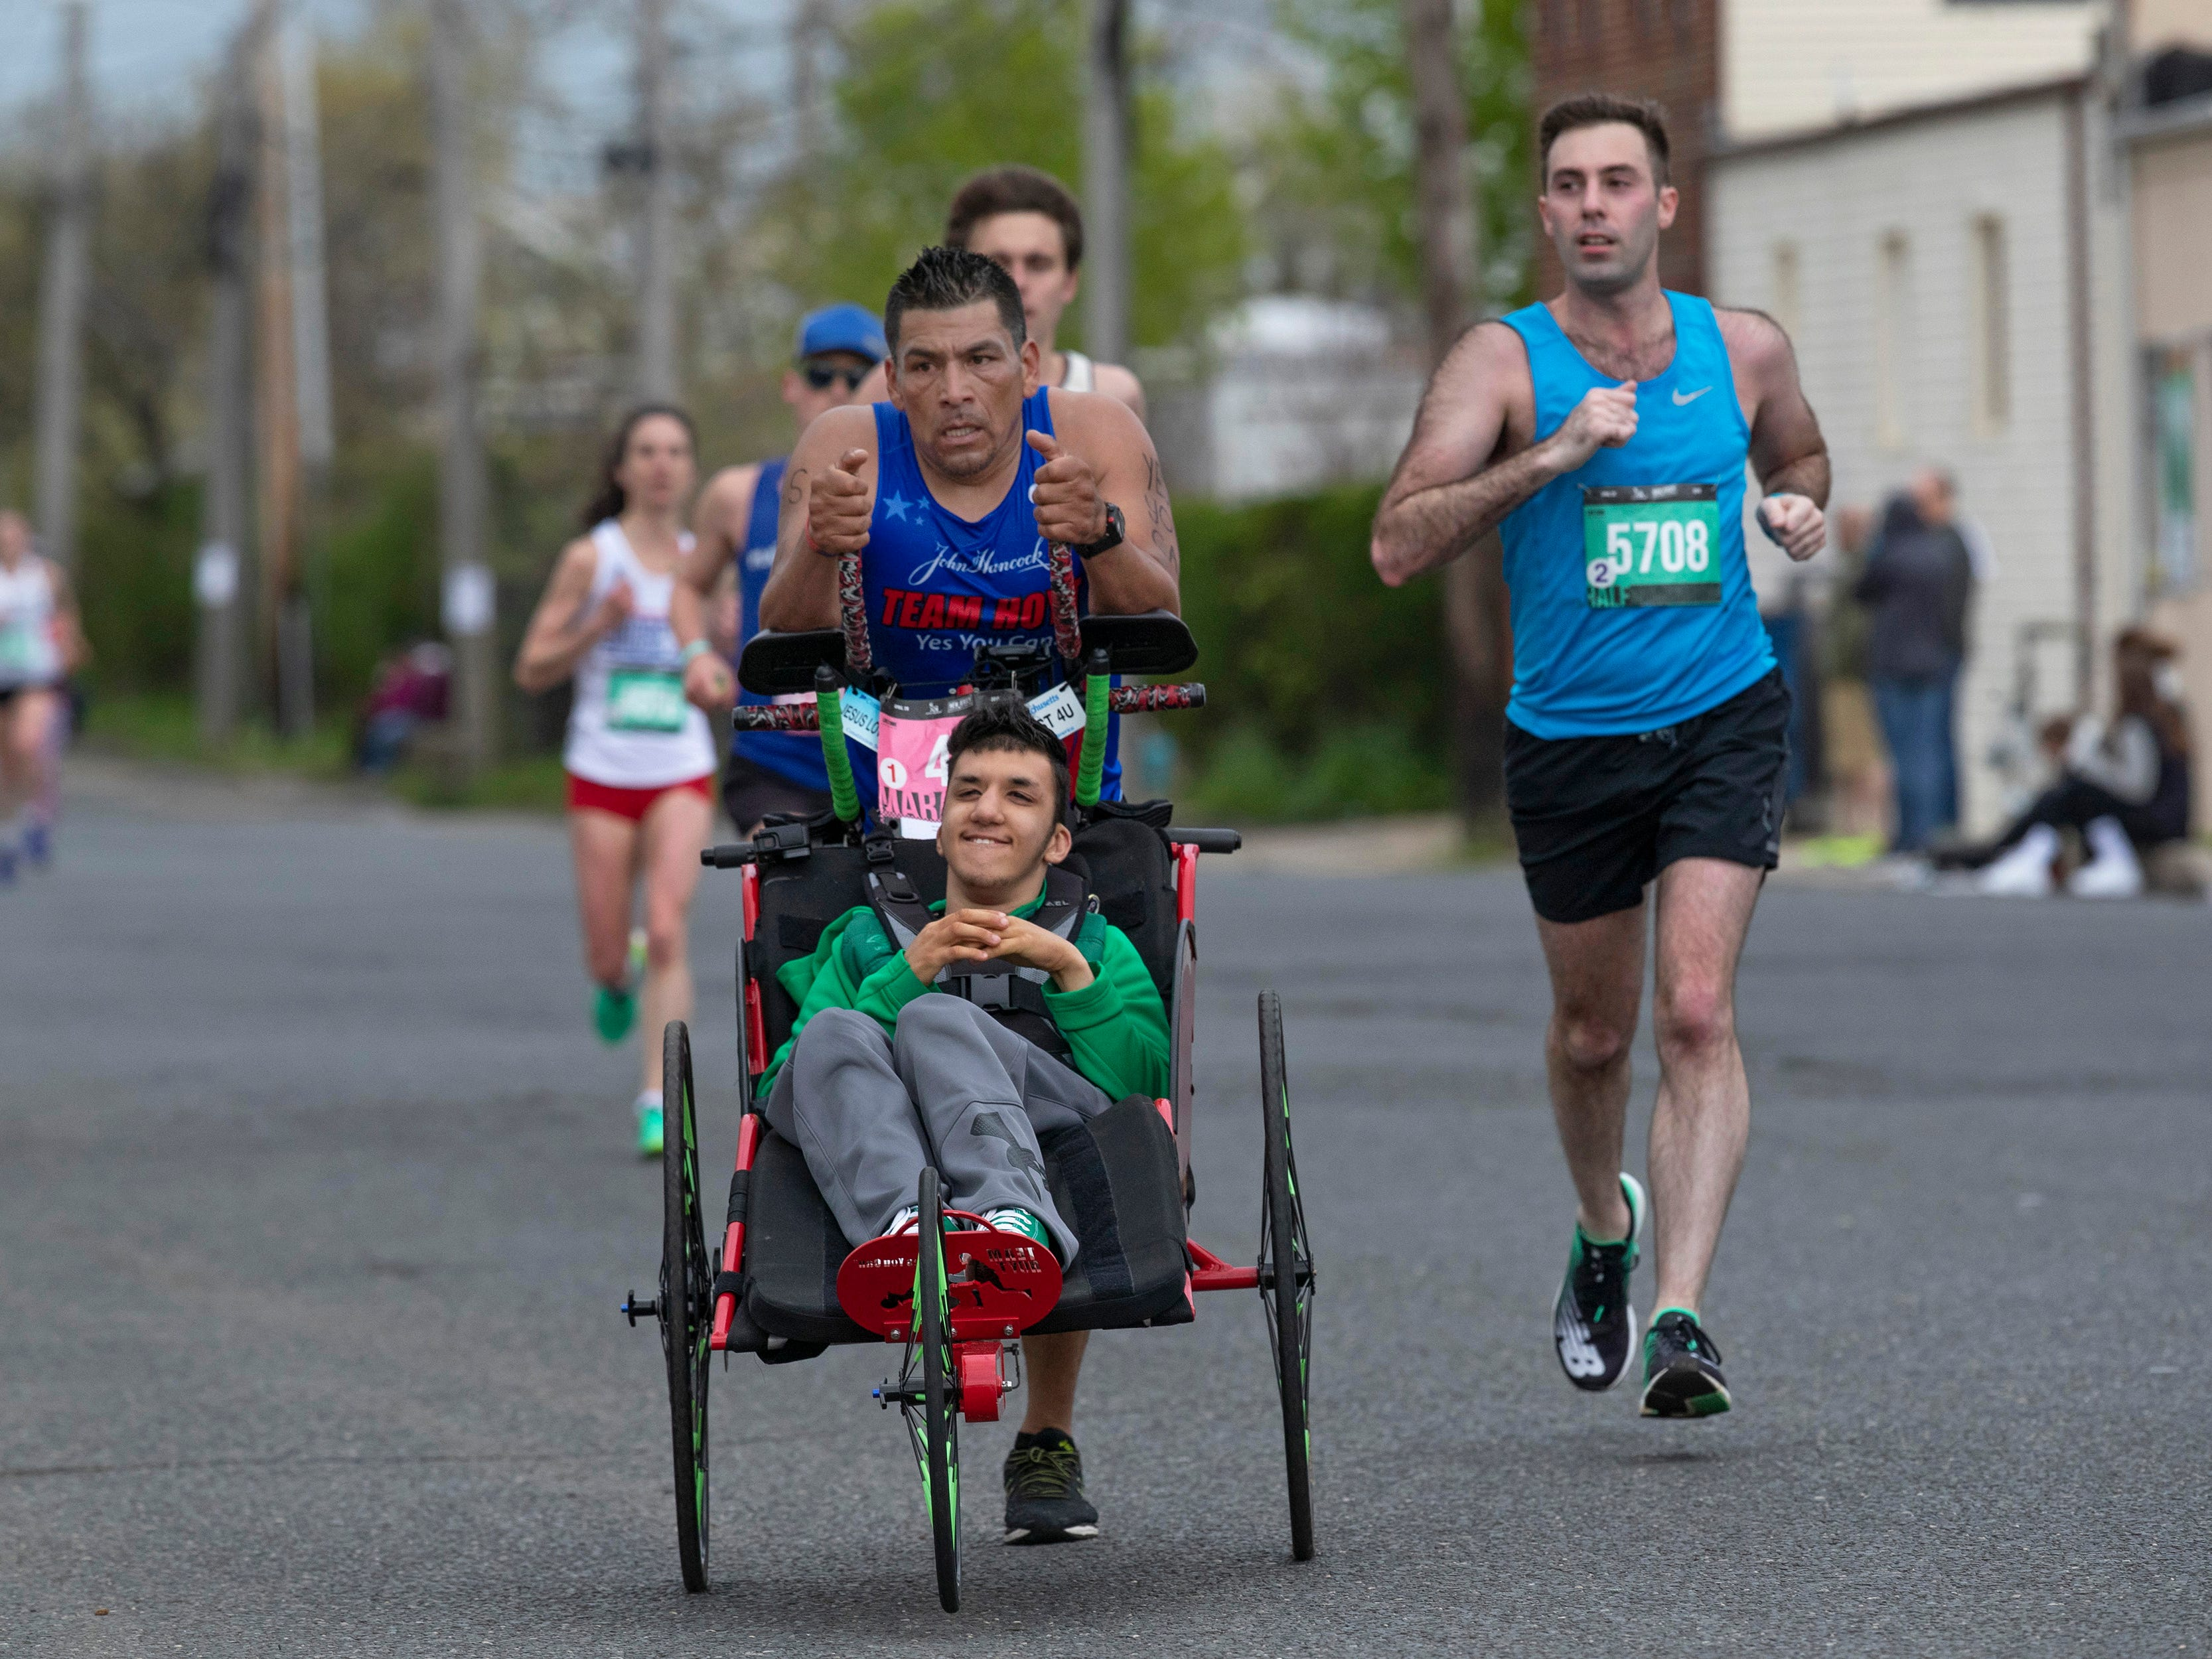 2019 Novo Nordisk New Jersey Marathon and Half Marathon which started at Monmouth Park in Oceanport and ended at Ocean Promenade in Long Branch.